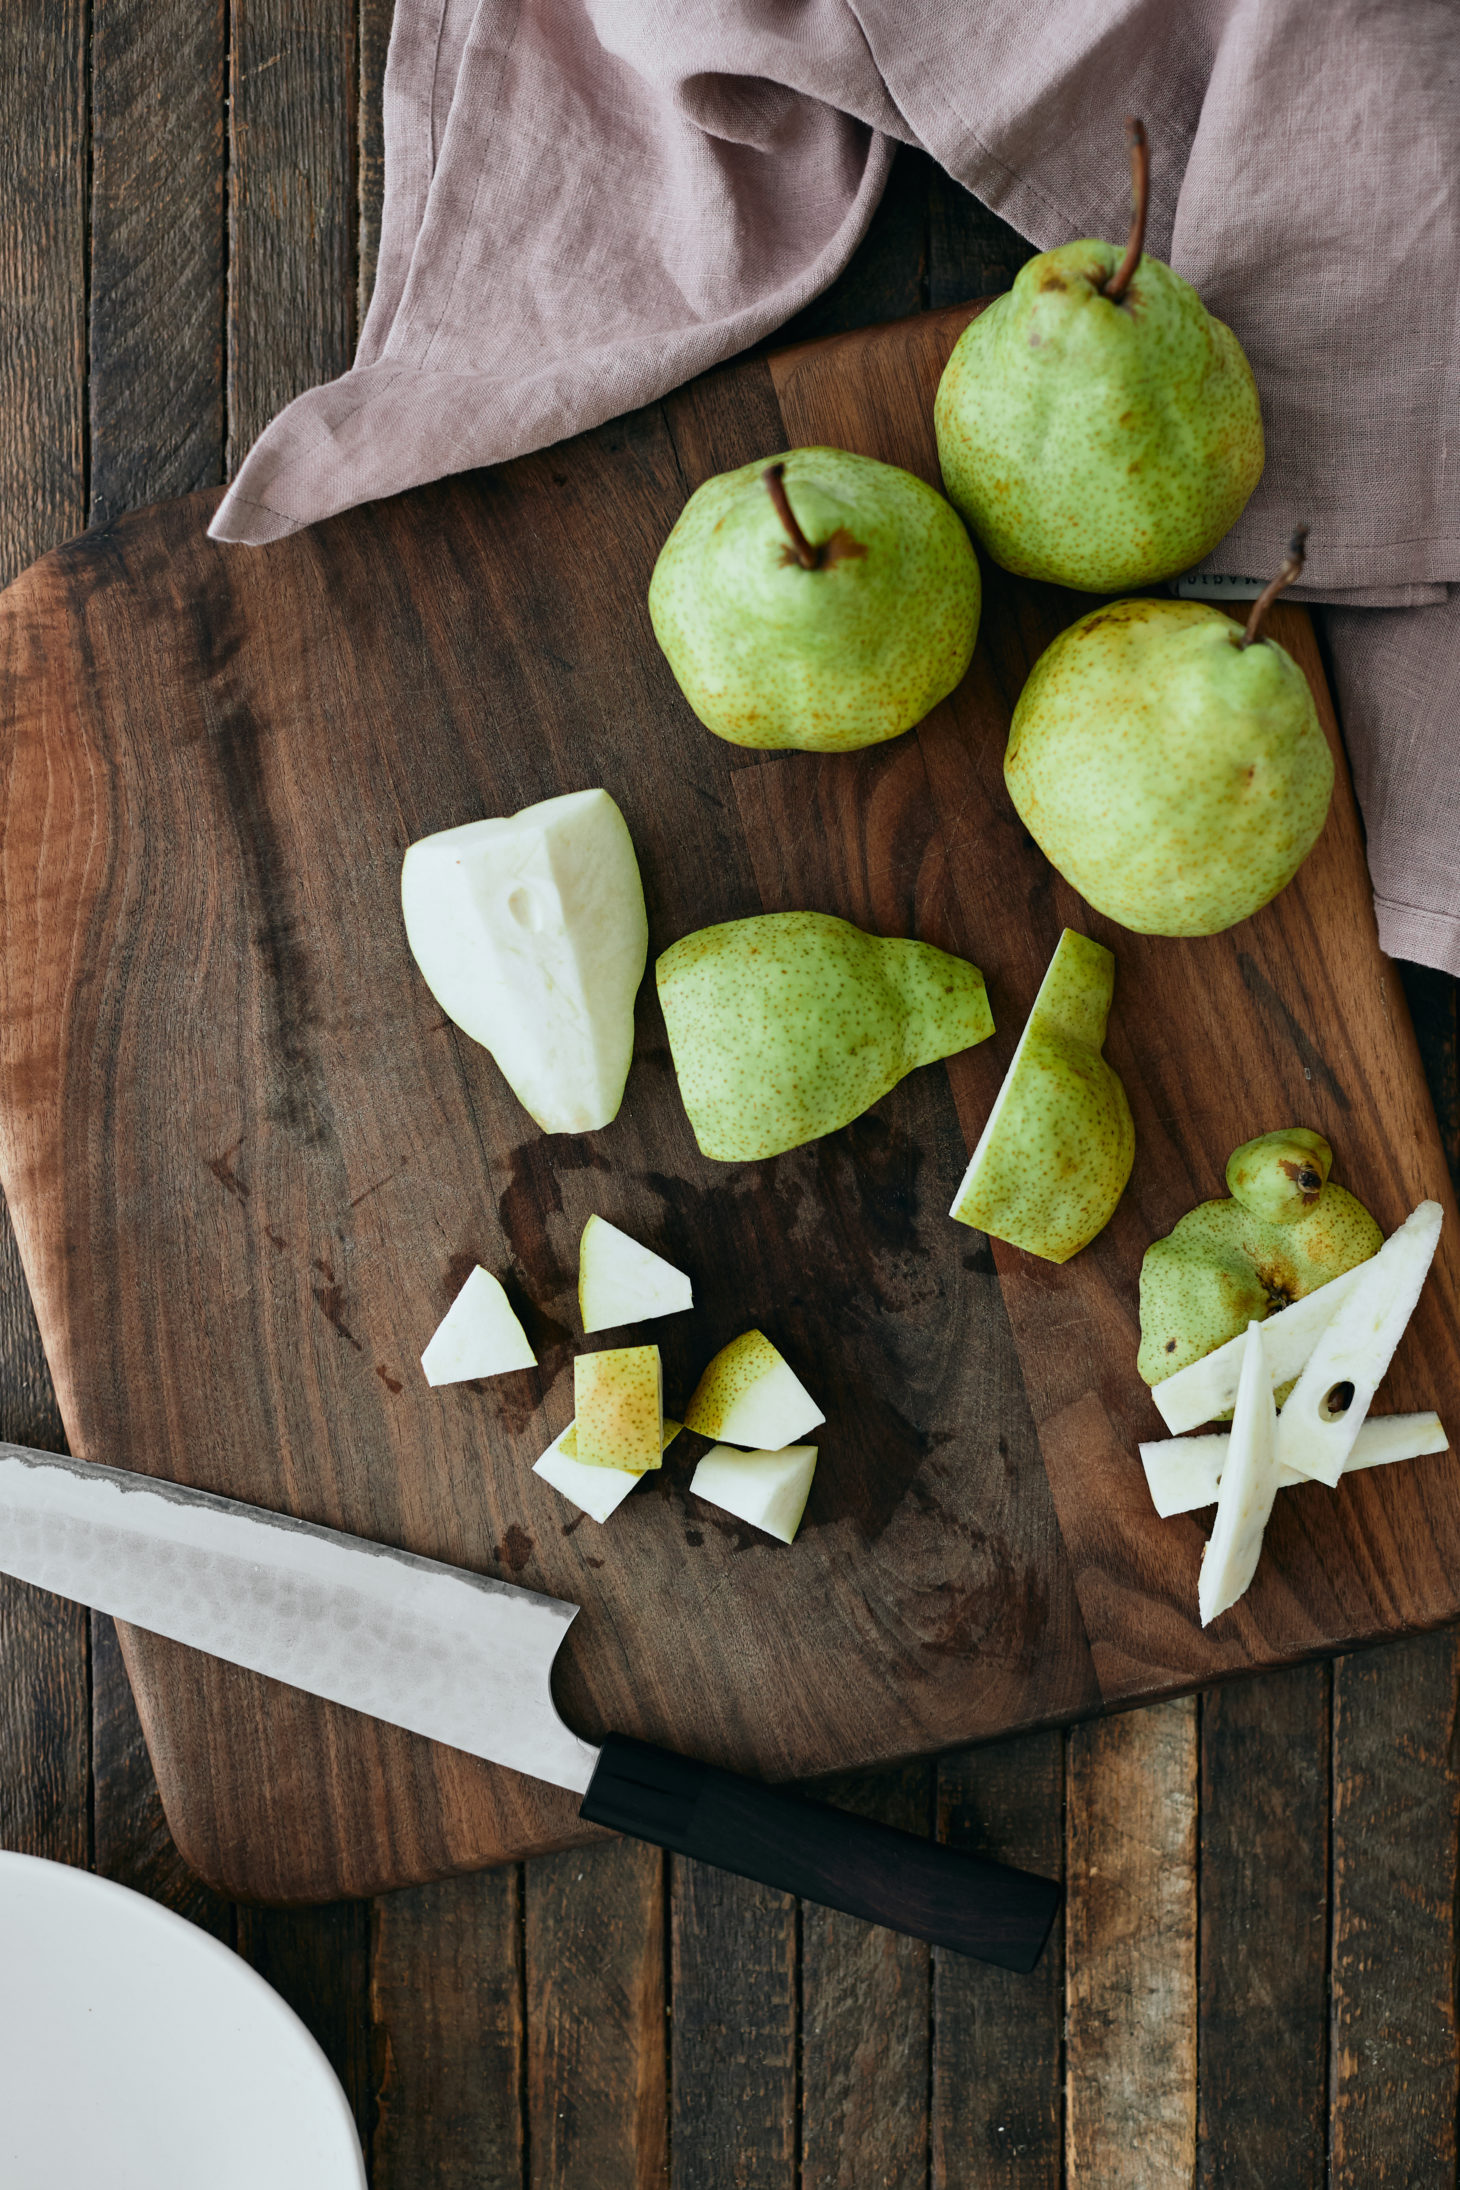 Diced green pears